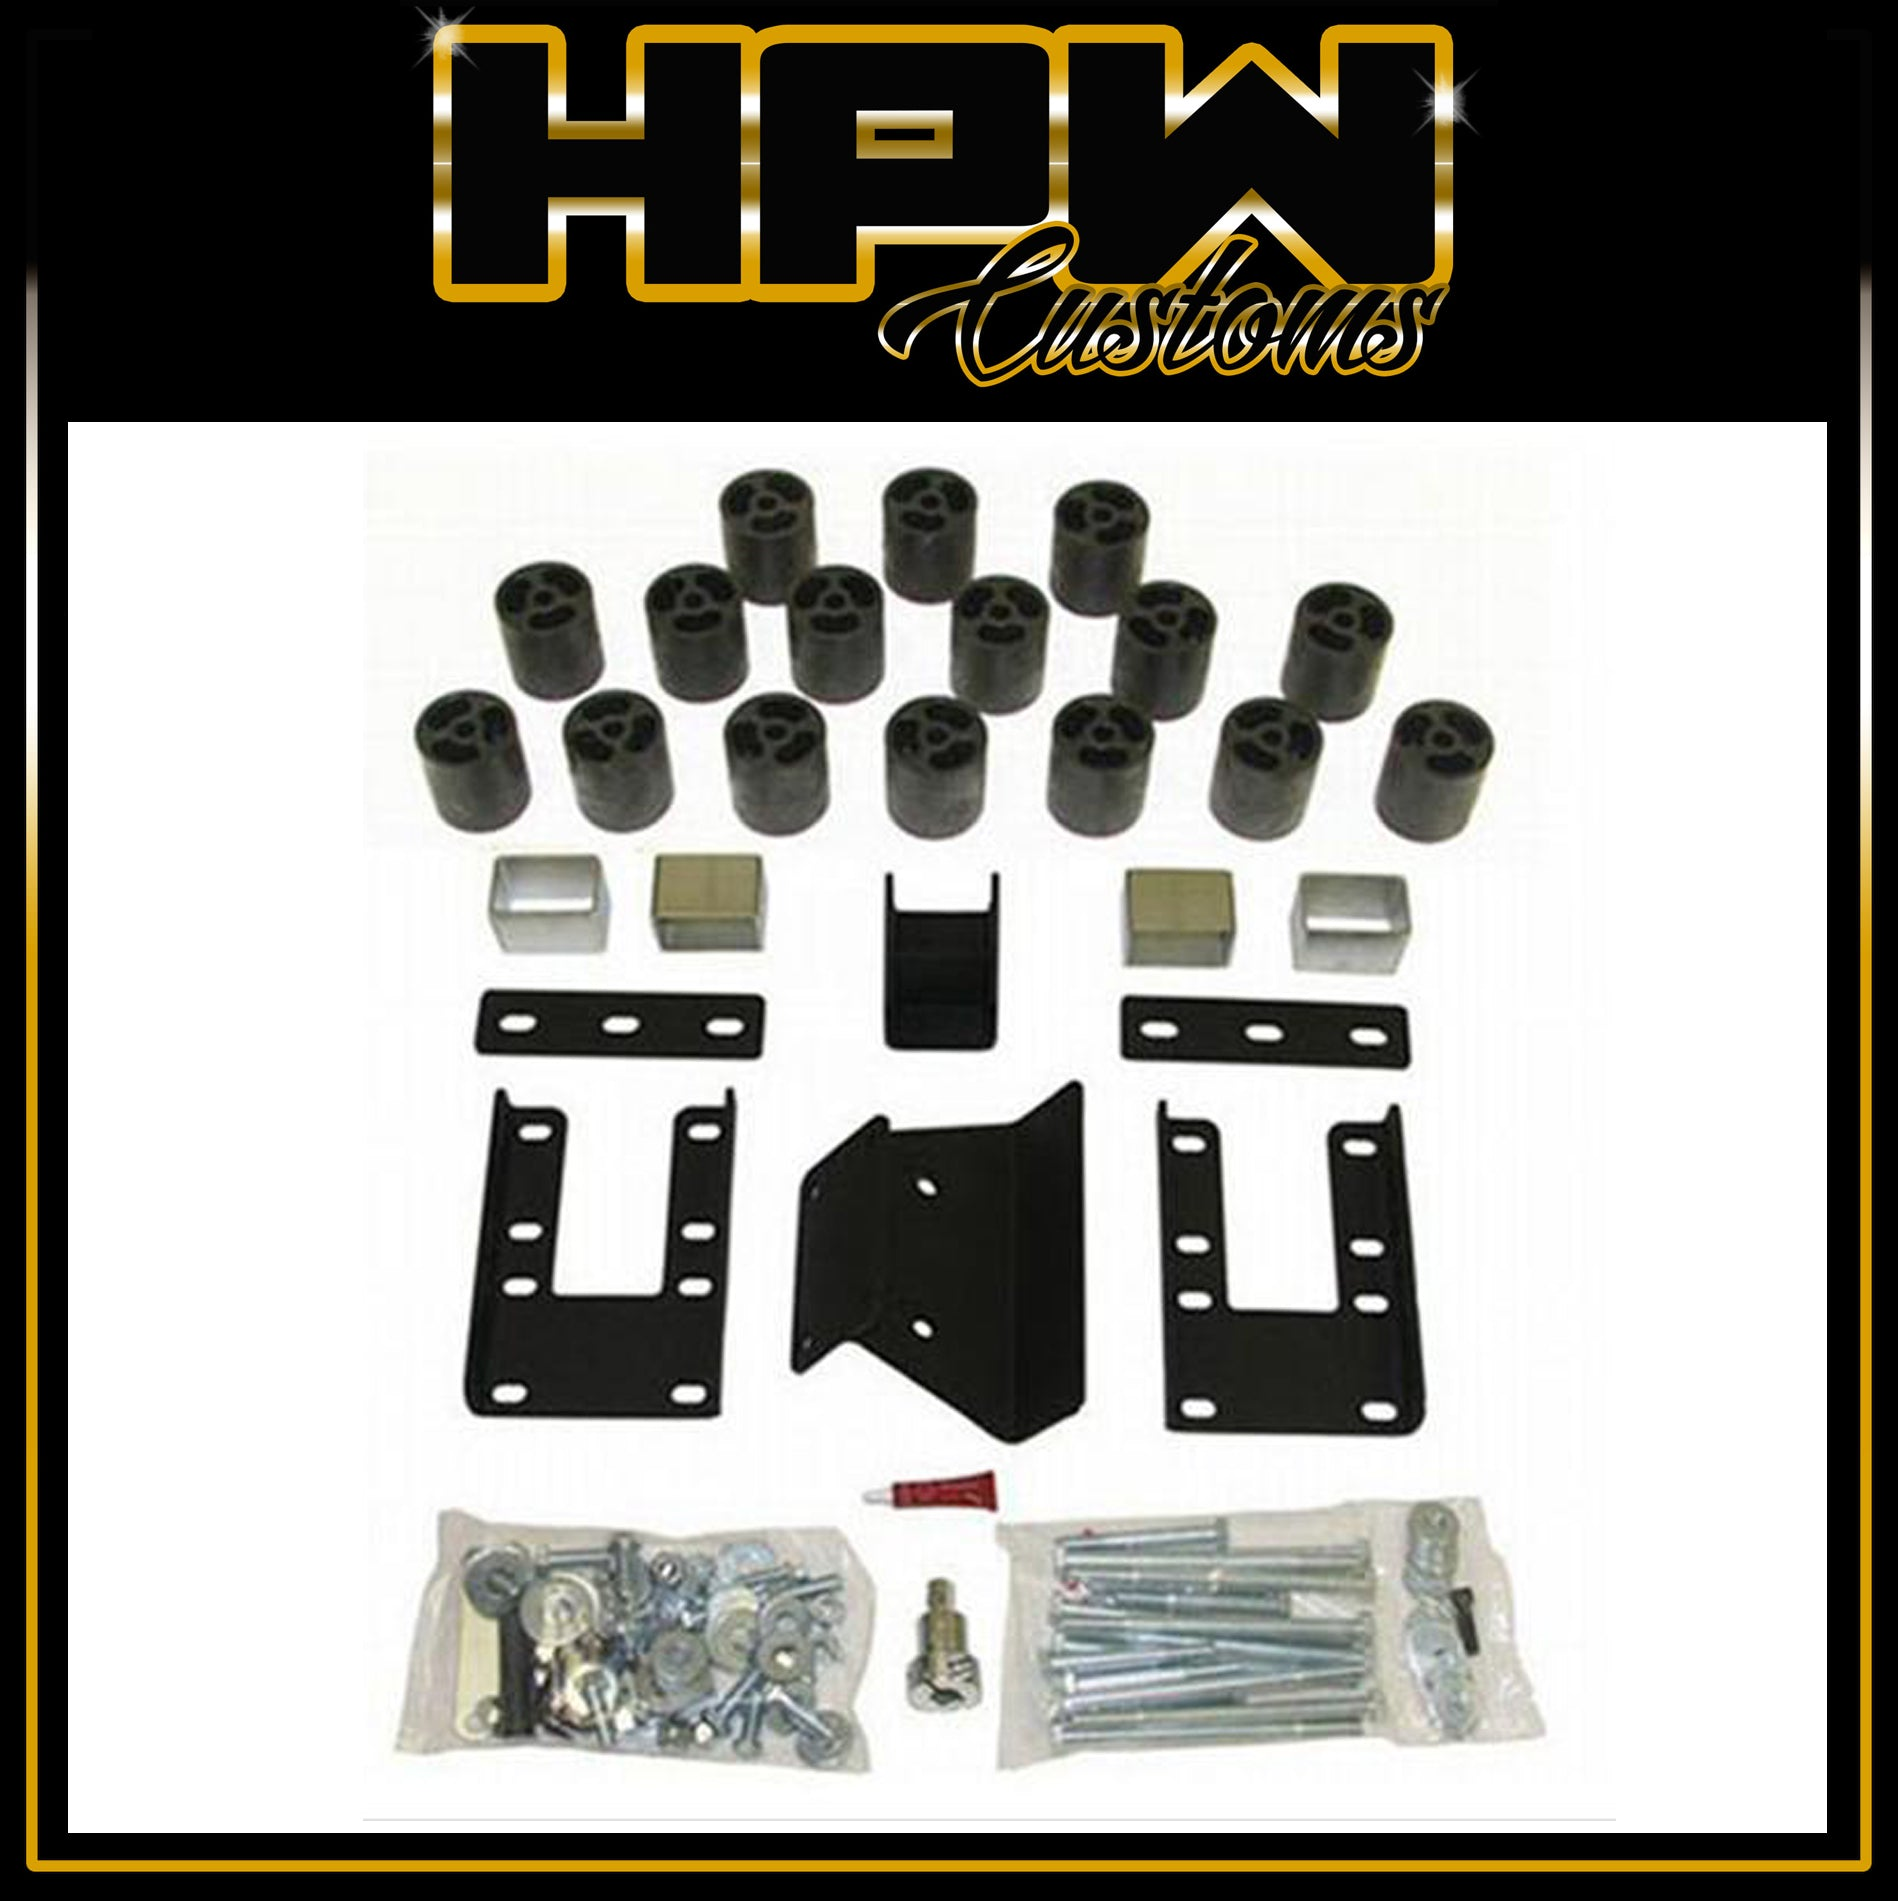 "HPW CUSTOMS 3"" BODY Lift kit for RAM 1500 LARAMIE & EXPRESS"